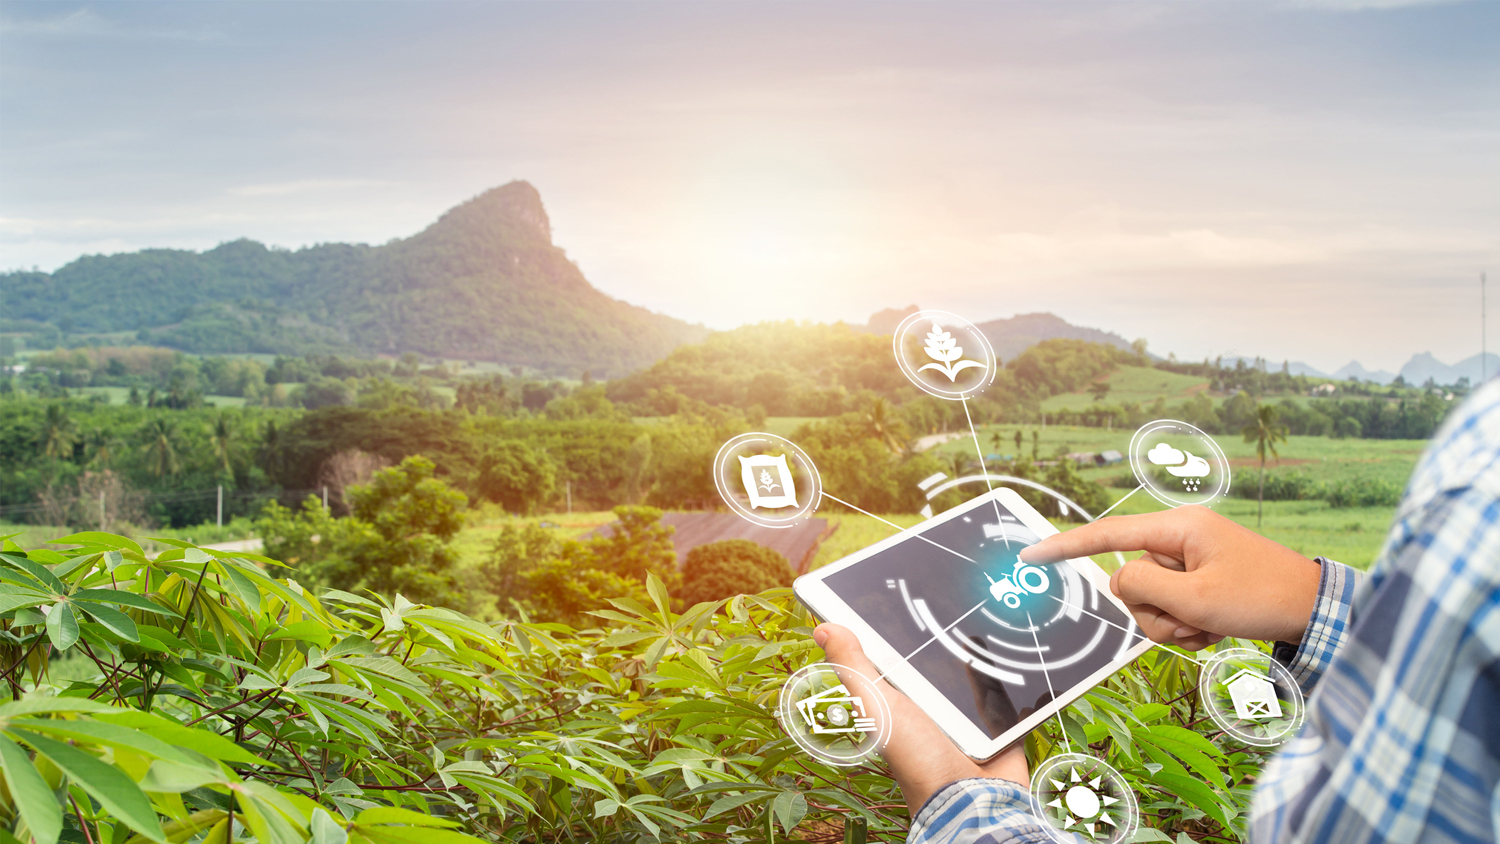 Cultivating High-tech Change in the Agriculture Industry